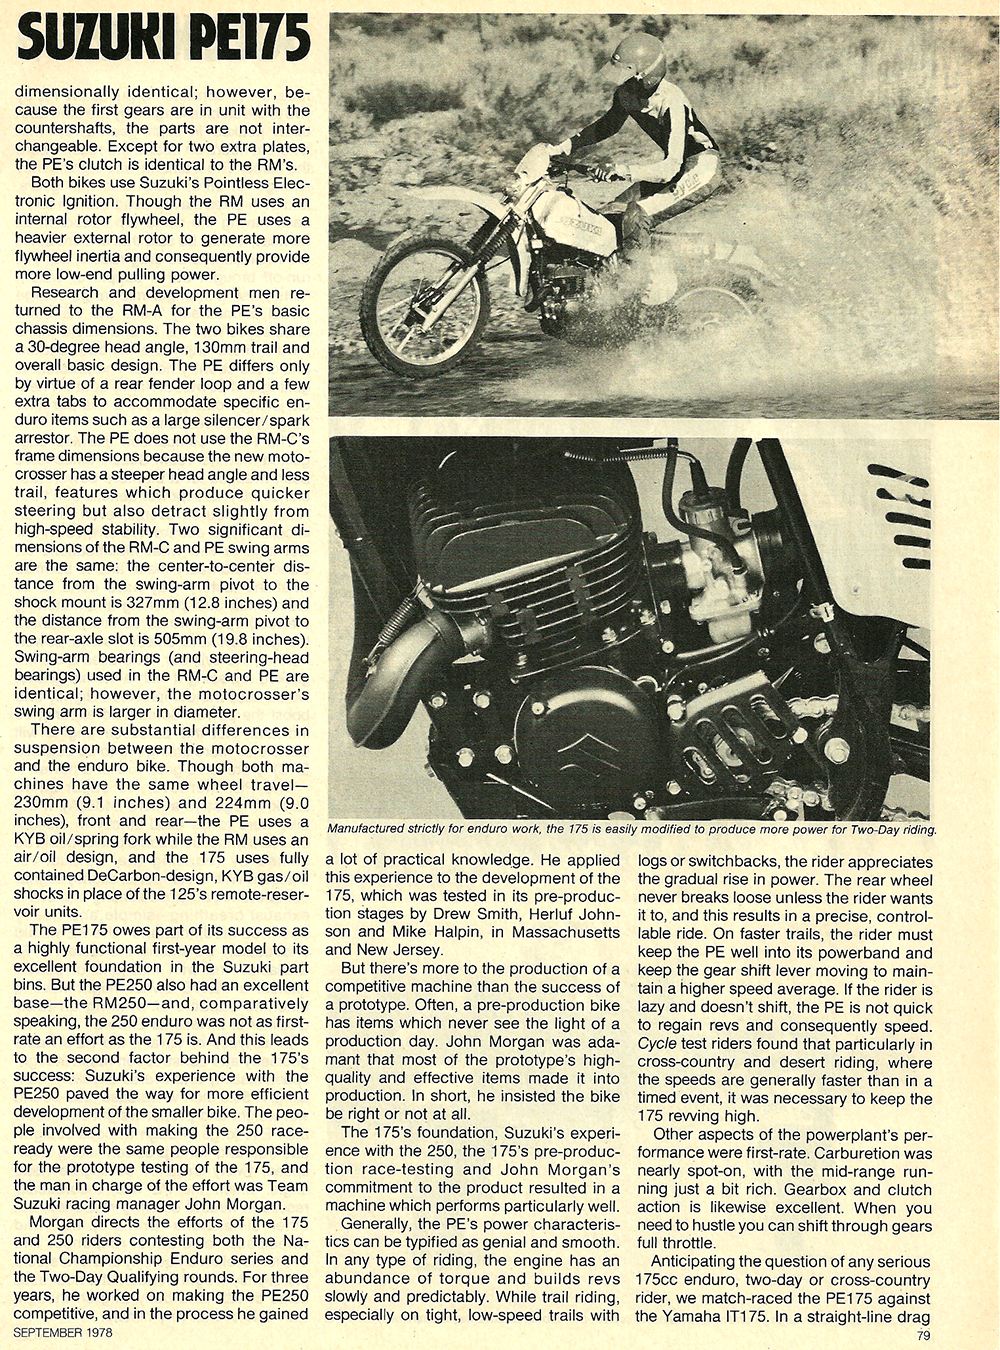 1978 Suzuki PE175 road test 04.jpg